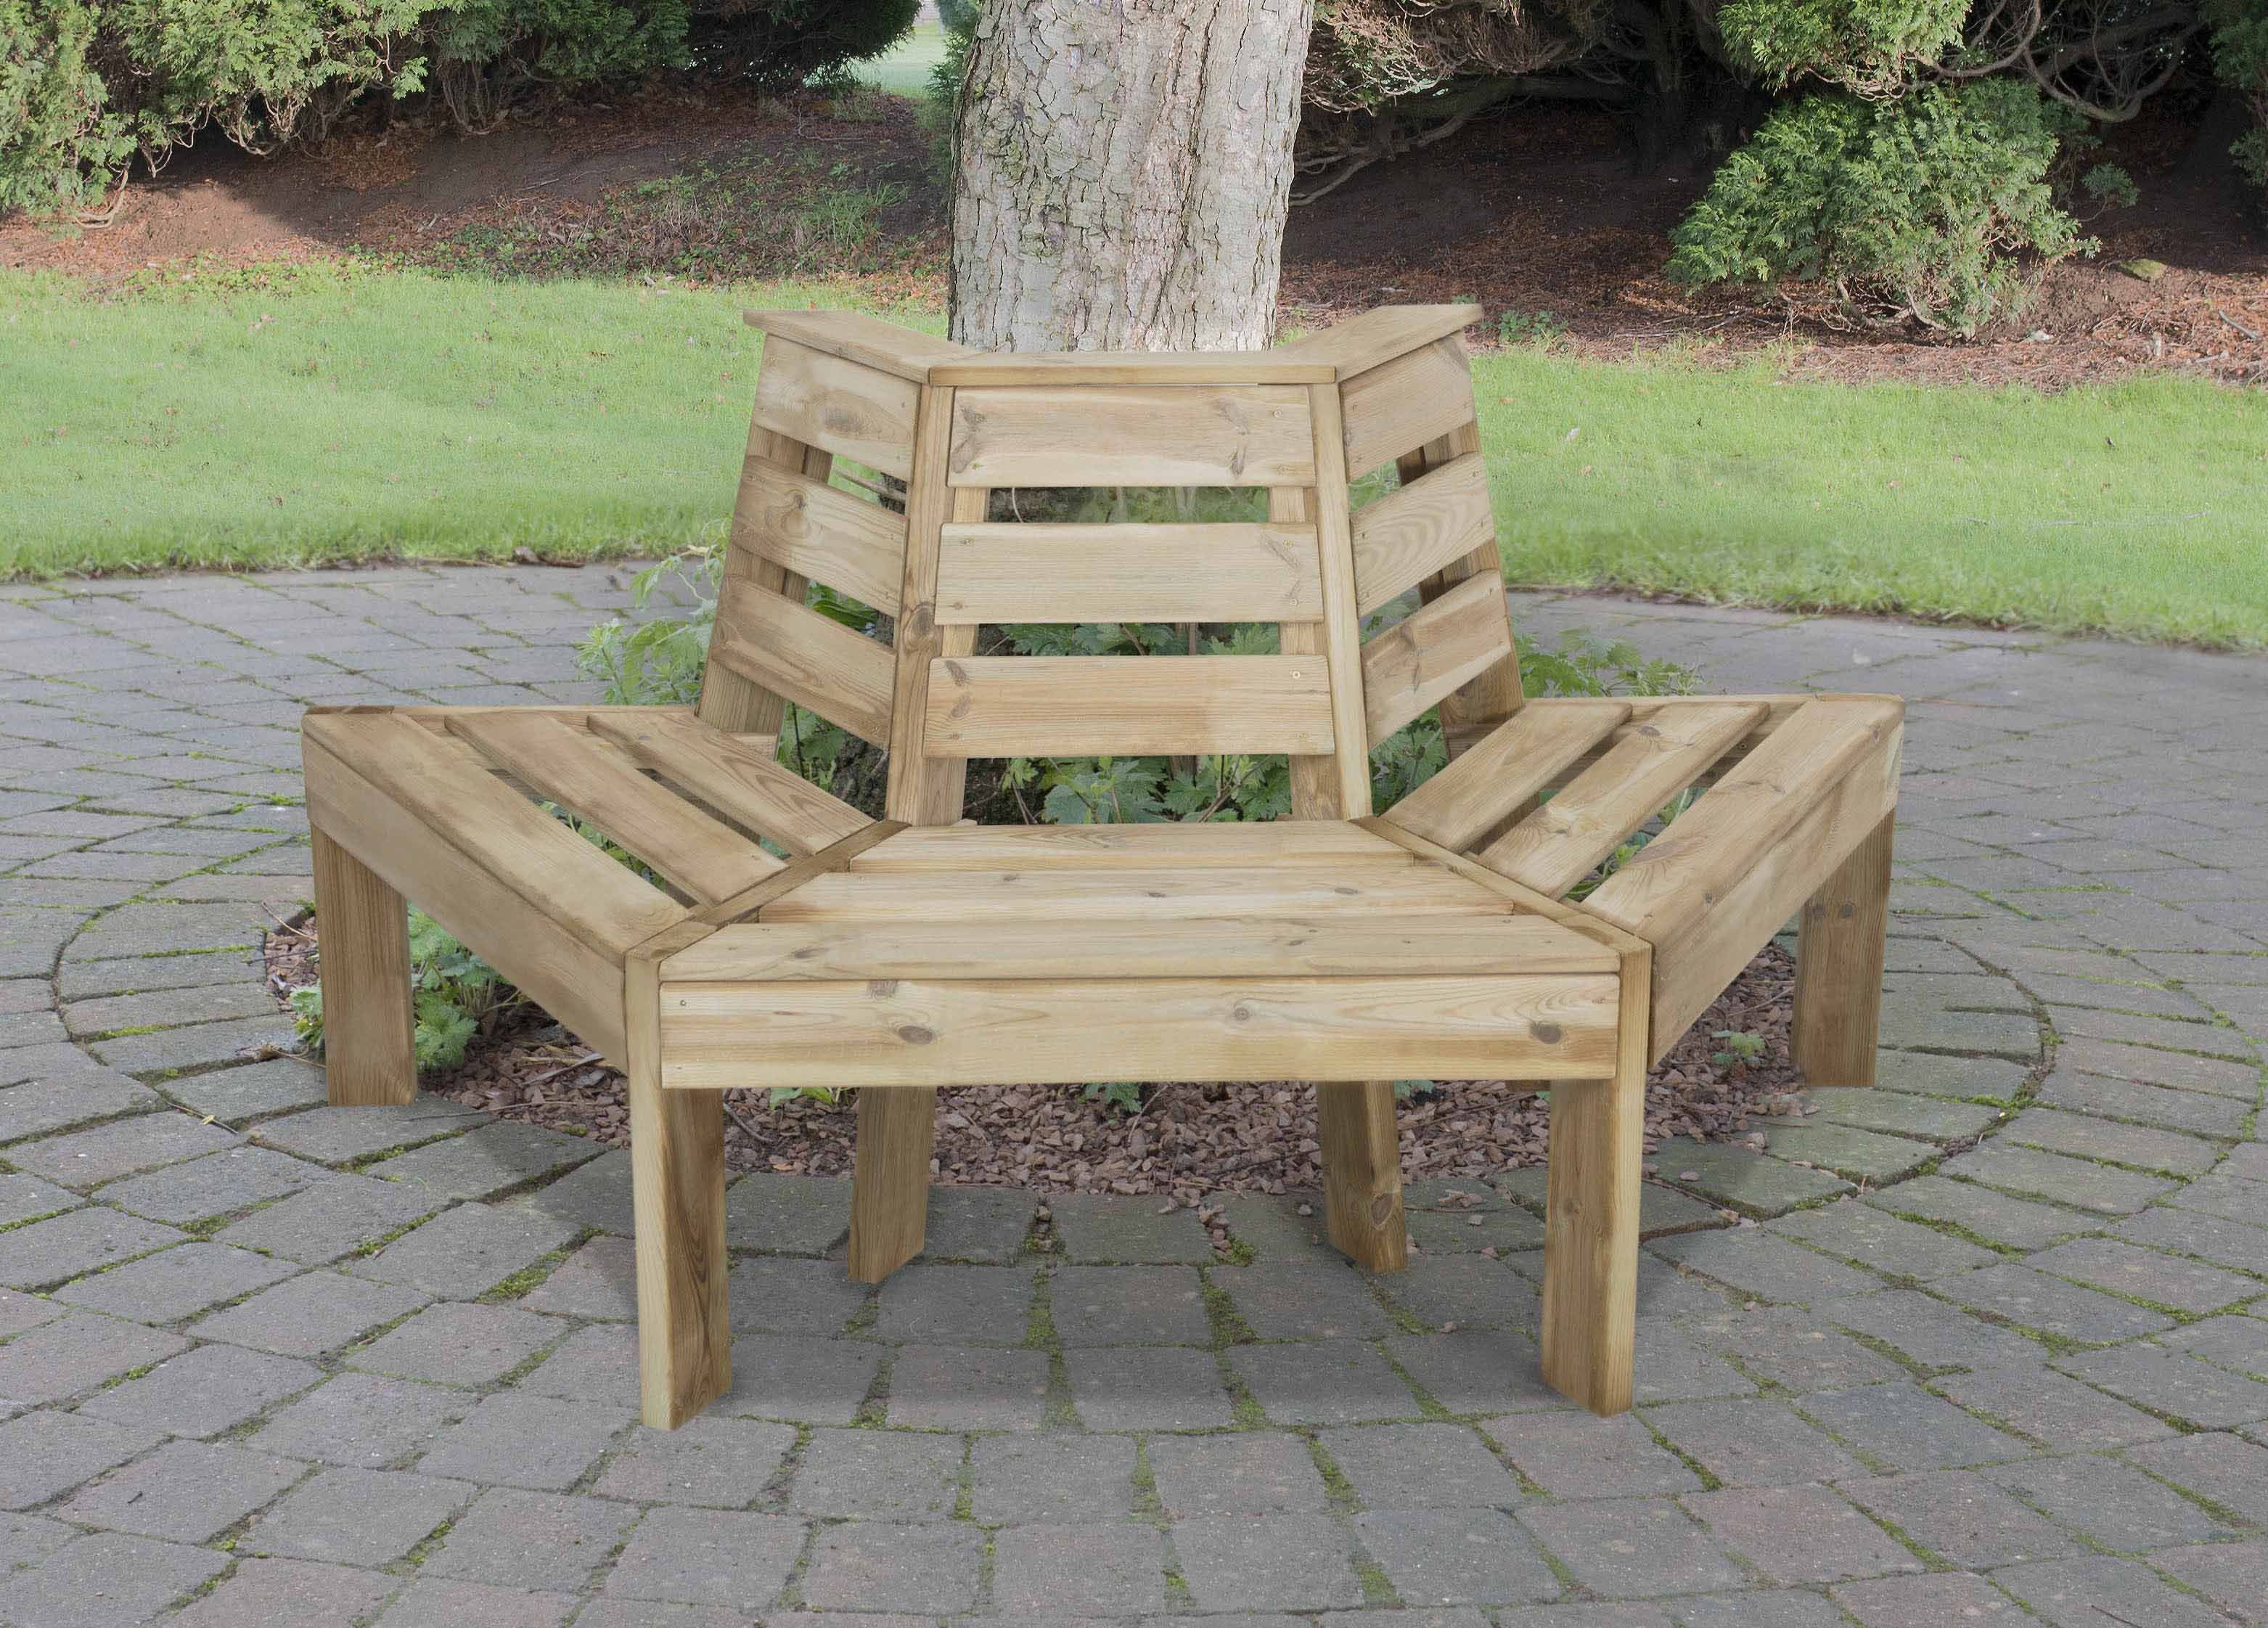 Tree Seats Garden Furniture Wrought Iron Forest Treshd Timber Tree Seat Hd Garden Seating Garden Chairs Patio Chairs Garden Pinterest Forest Treshd Timber Tree Seat Hd Diy Ideas Pinterest Tree